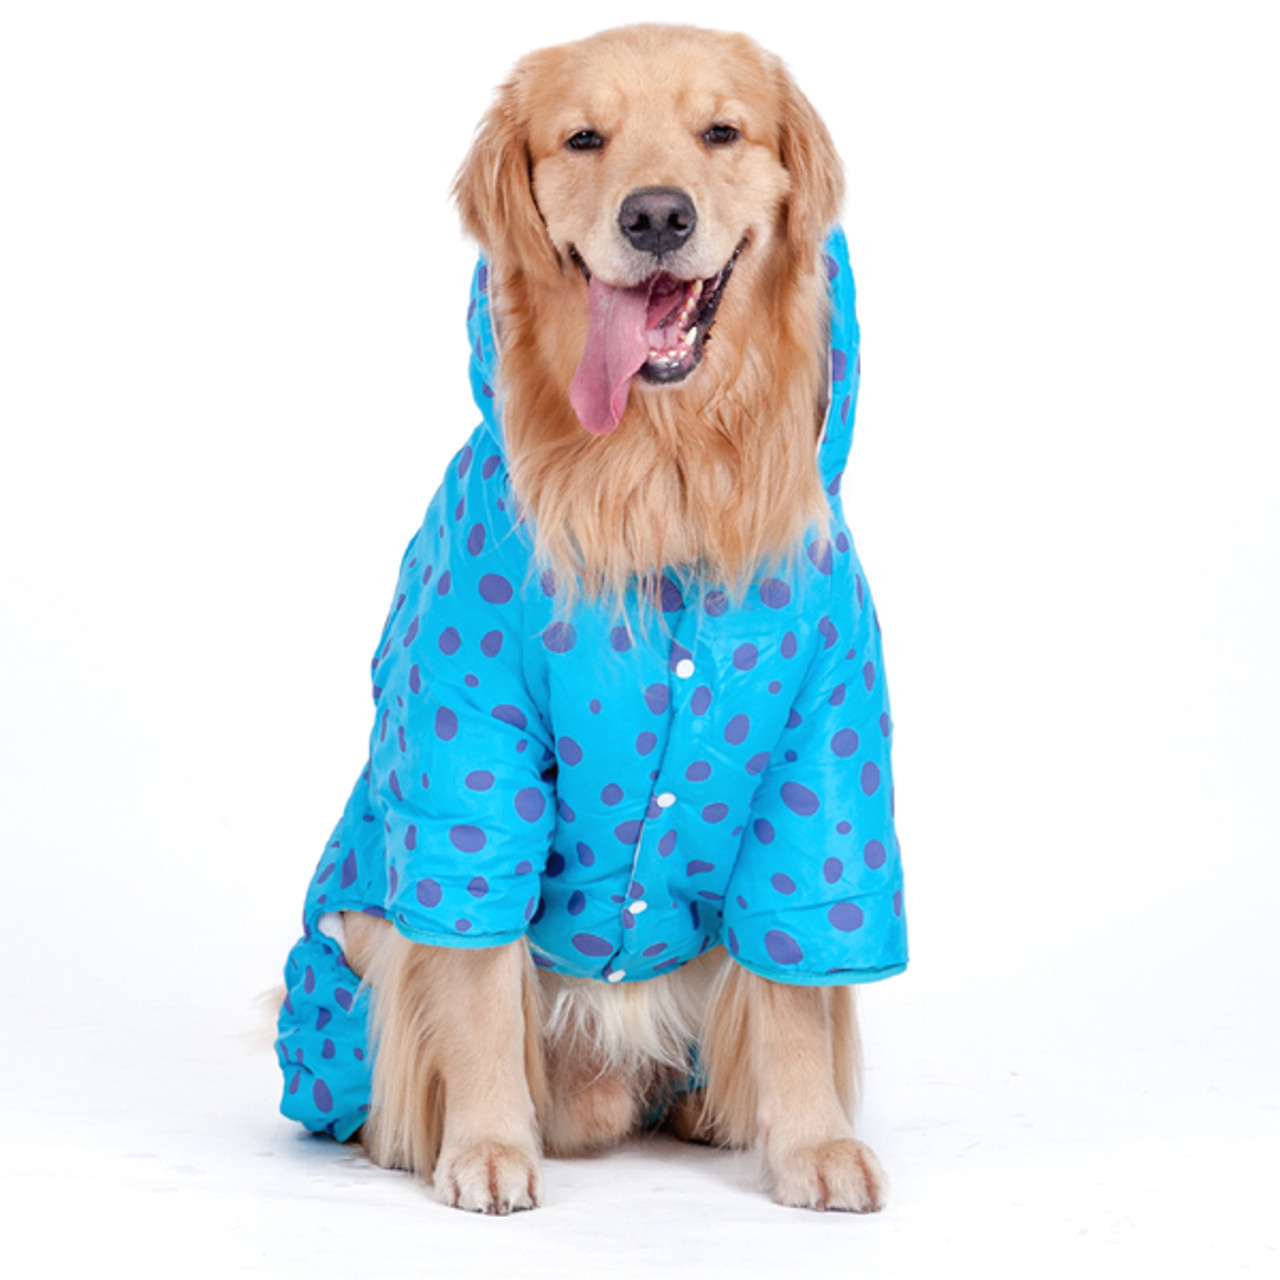 eaaf95d905a8 Waterproof Jacket Dog Rain Poncho Rain Coat for Medium to Large Dogs for Golden  Retriever, Samoyed, ...